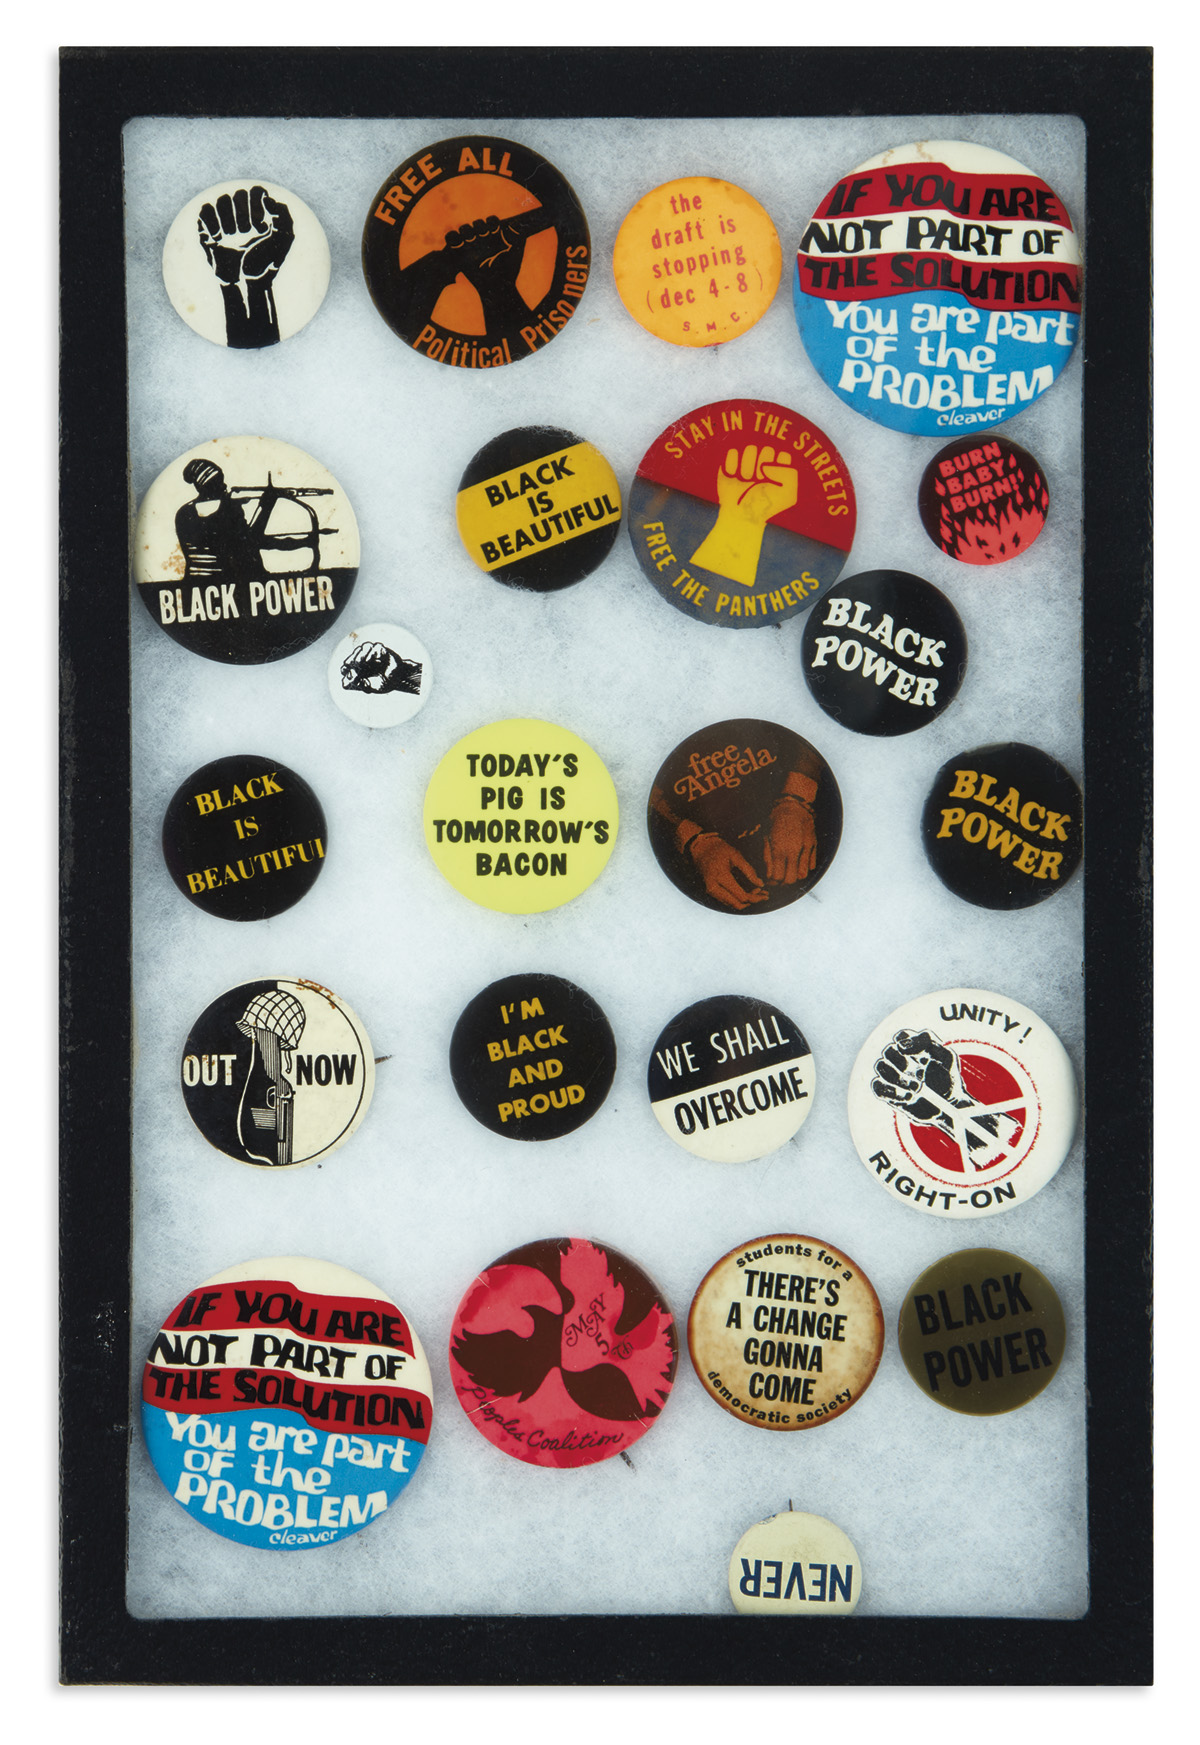 (BLACK PANTHERS.) Collection of Black Panther, Black Power, and other related buttons.